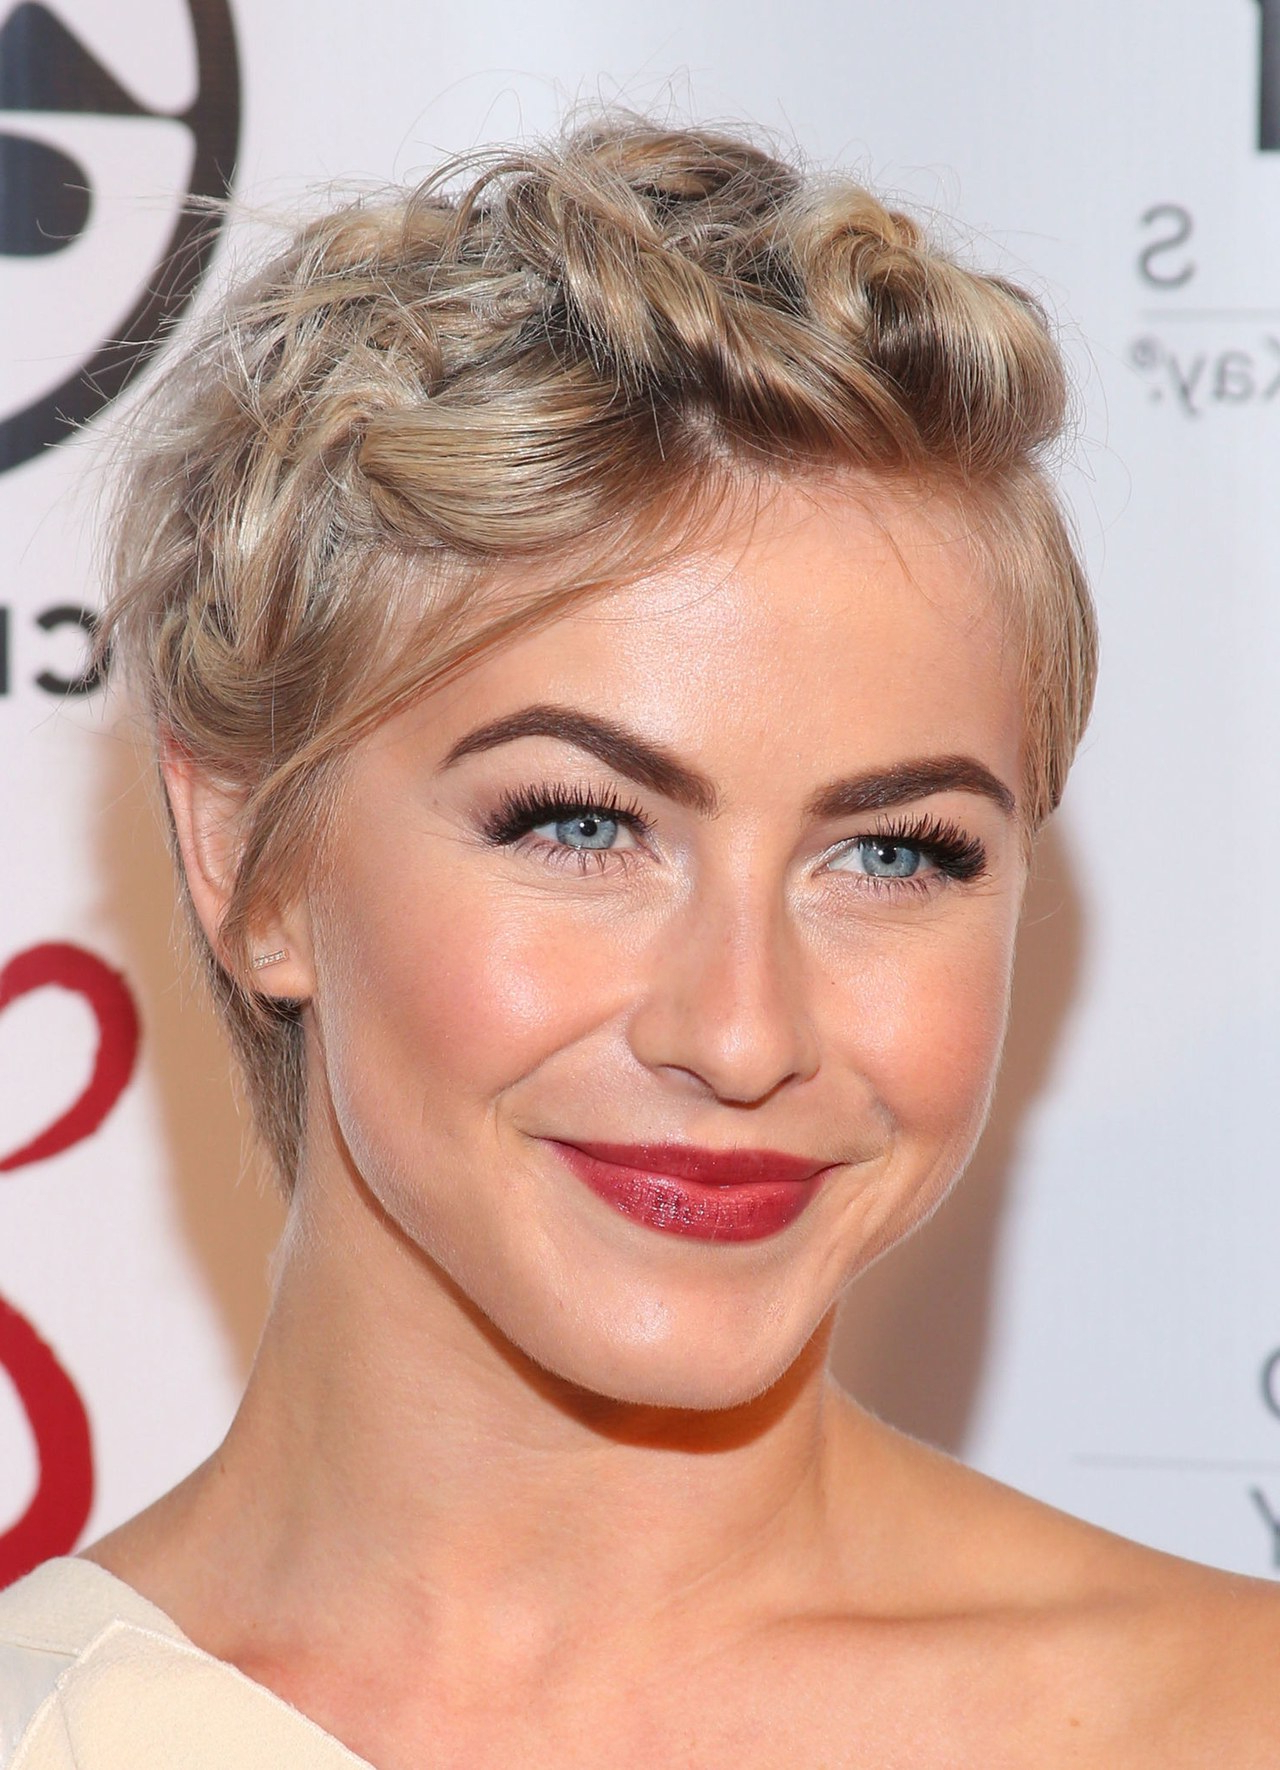 Julianne Hough Shows A Cute Hairstyle Option For Short Hair For with regard to Julianne Hough Short Haircuts